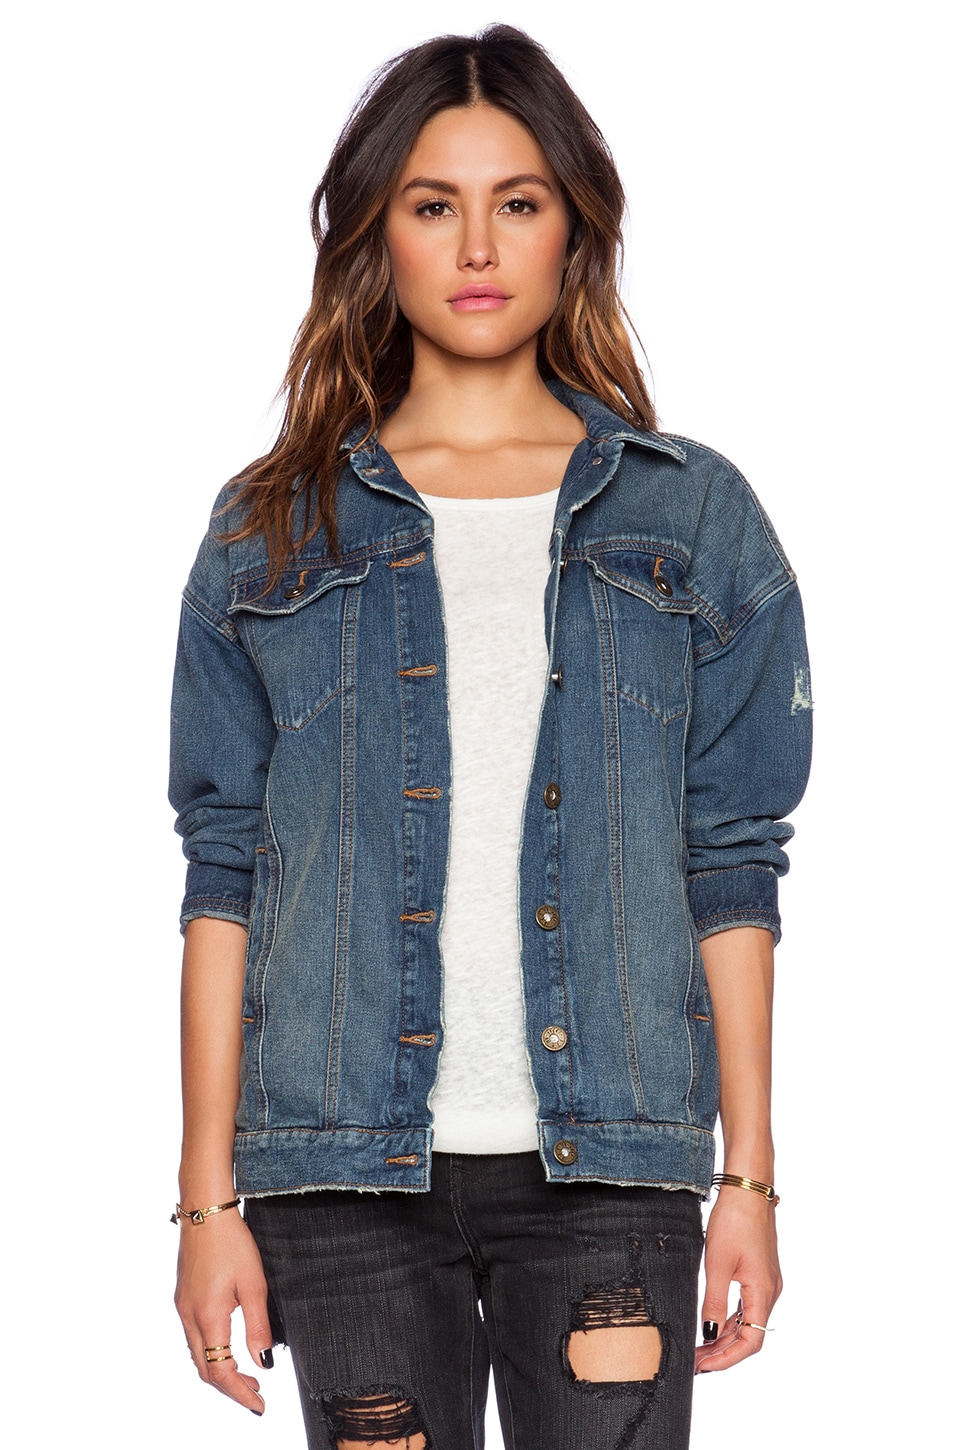 Free People Long Denim Jacket in Alabama Wash